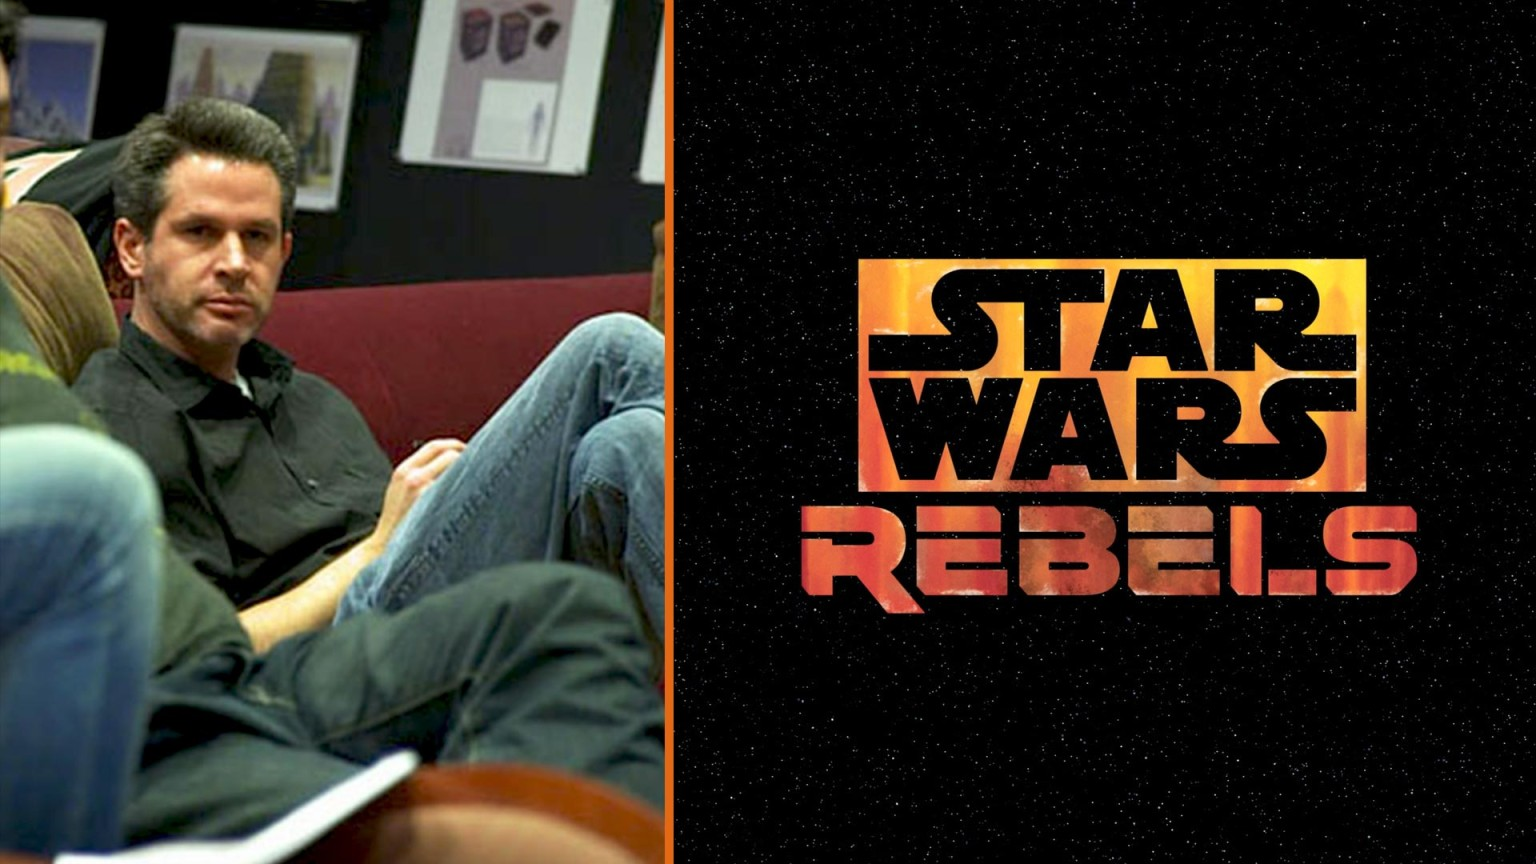 Simon Kinberg, executive producer of Star Wars Rebels